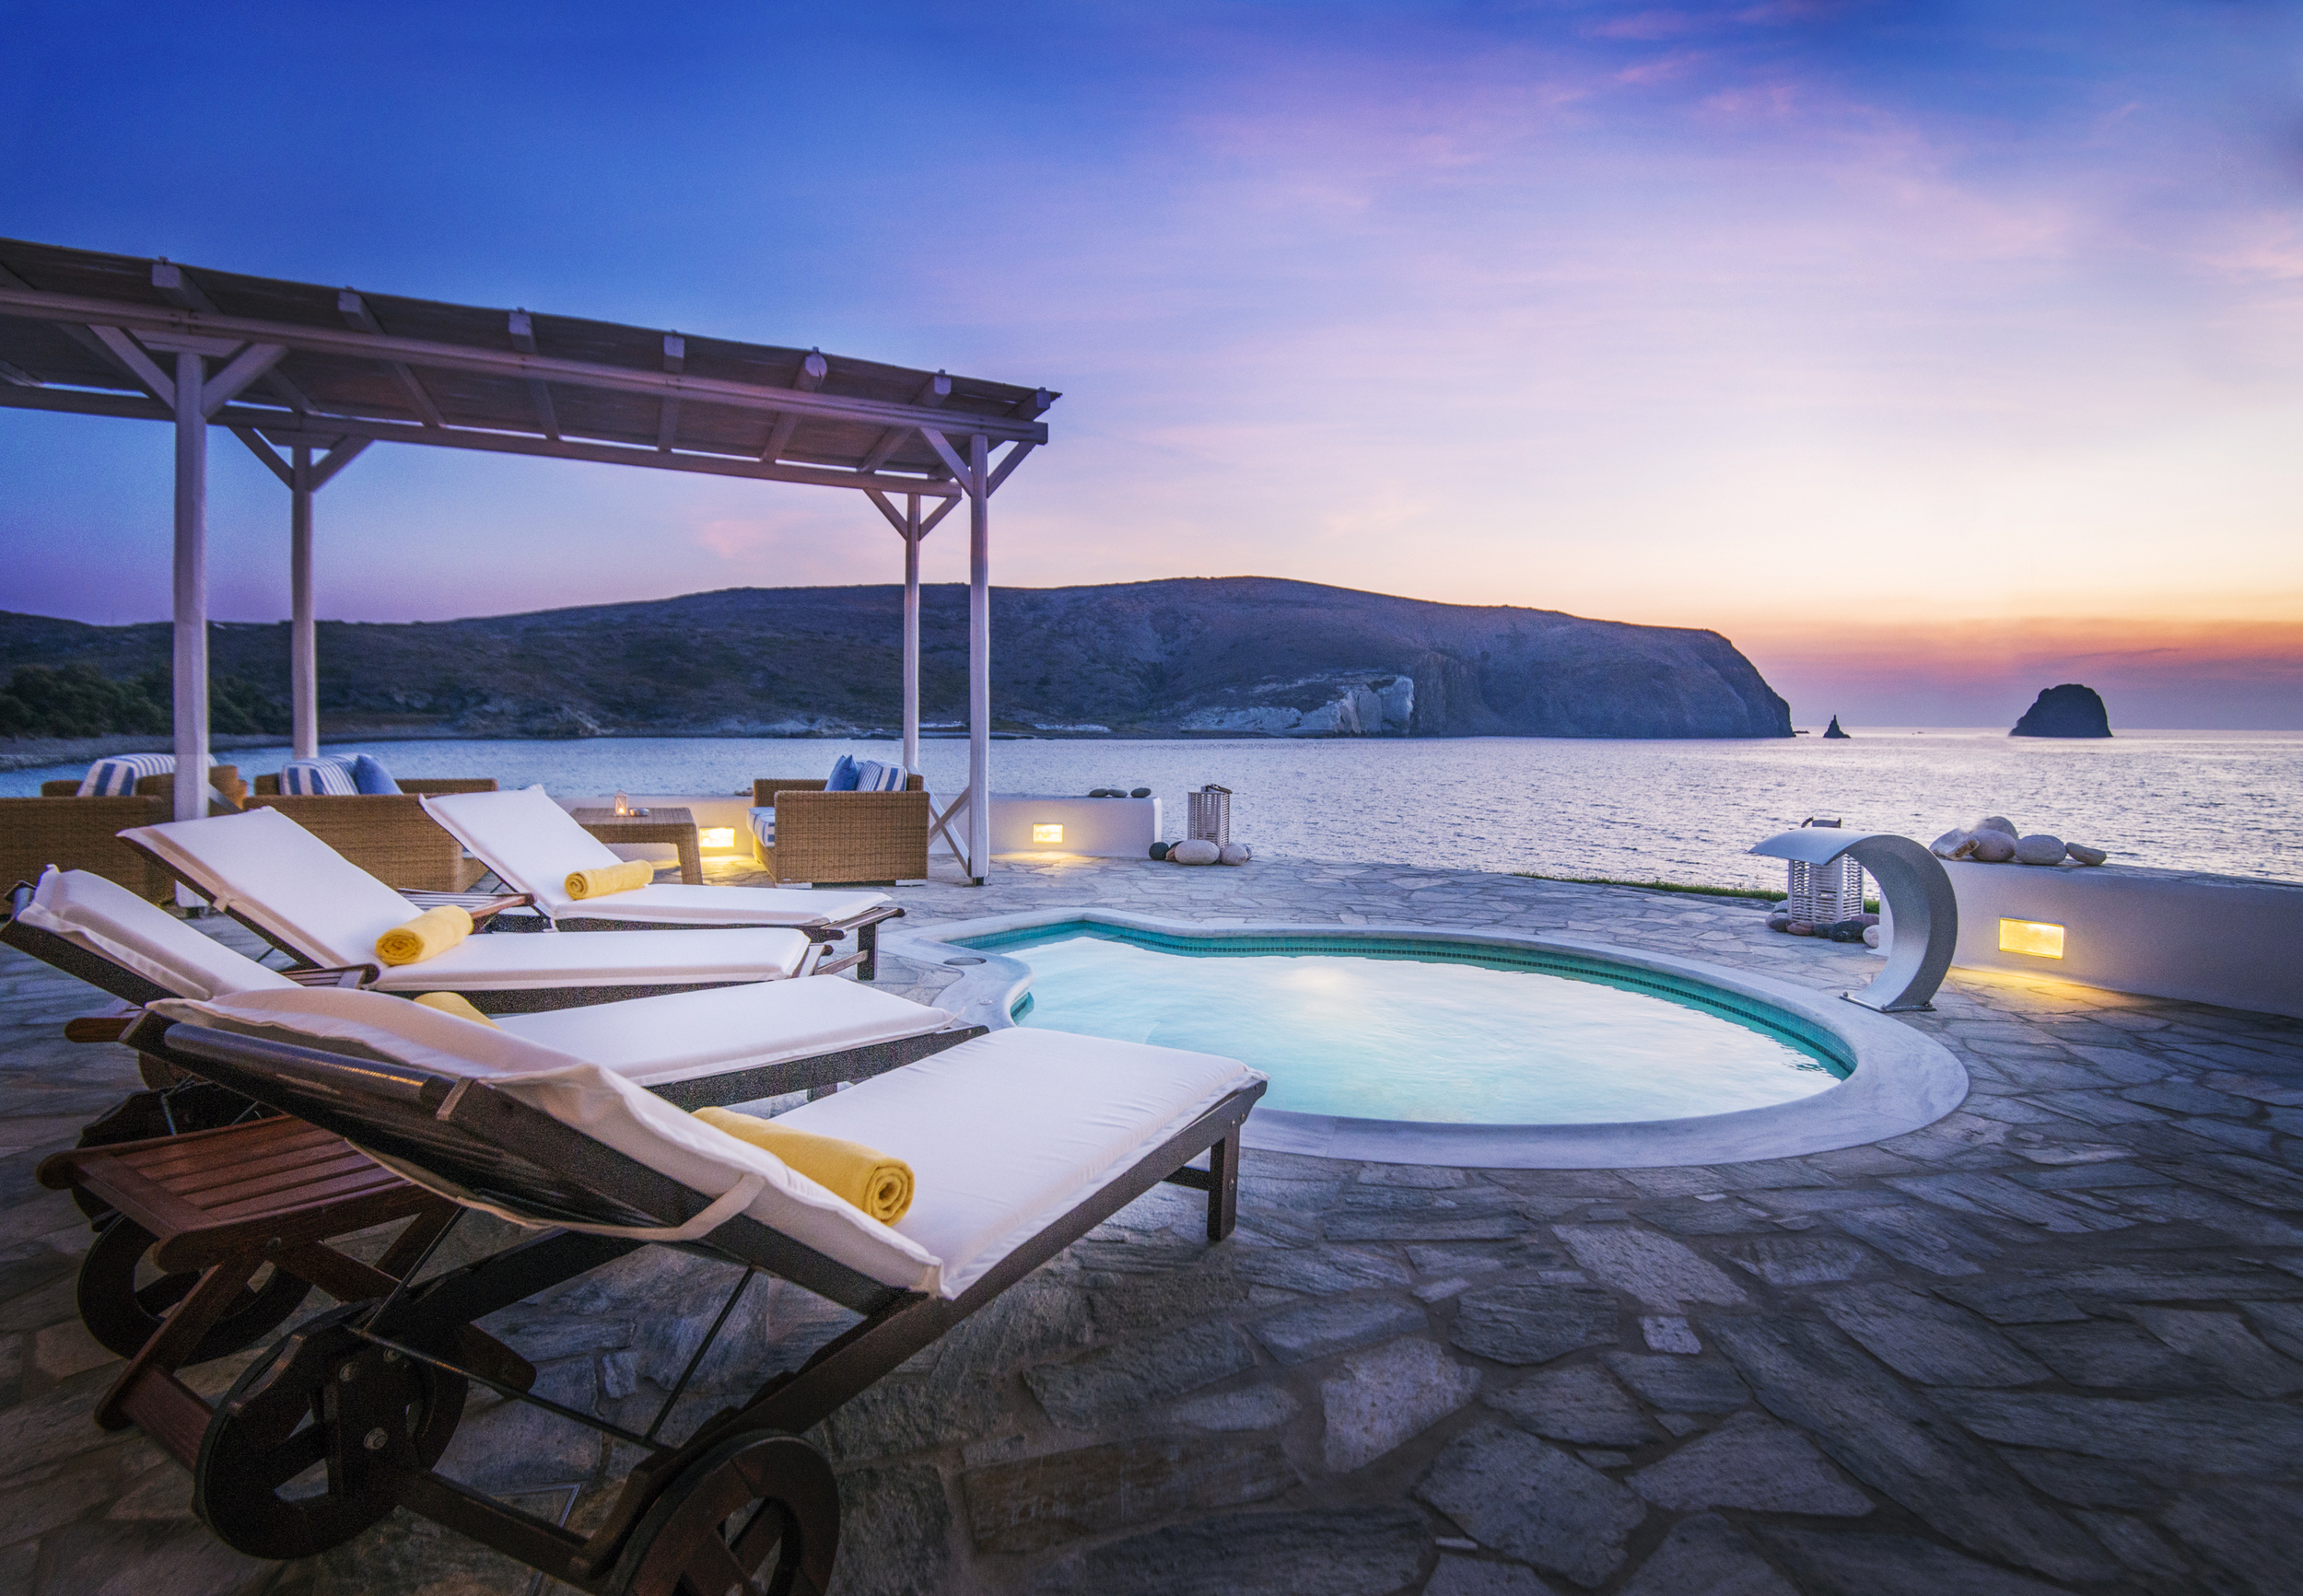 GREECE_FINAL_SELECTS_HOTEL_iPad-3.jpg